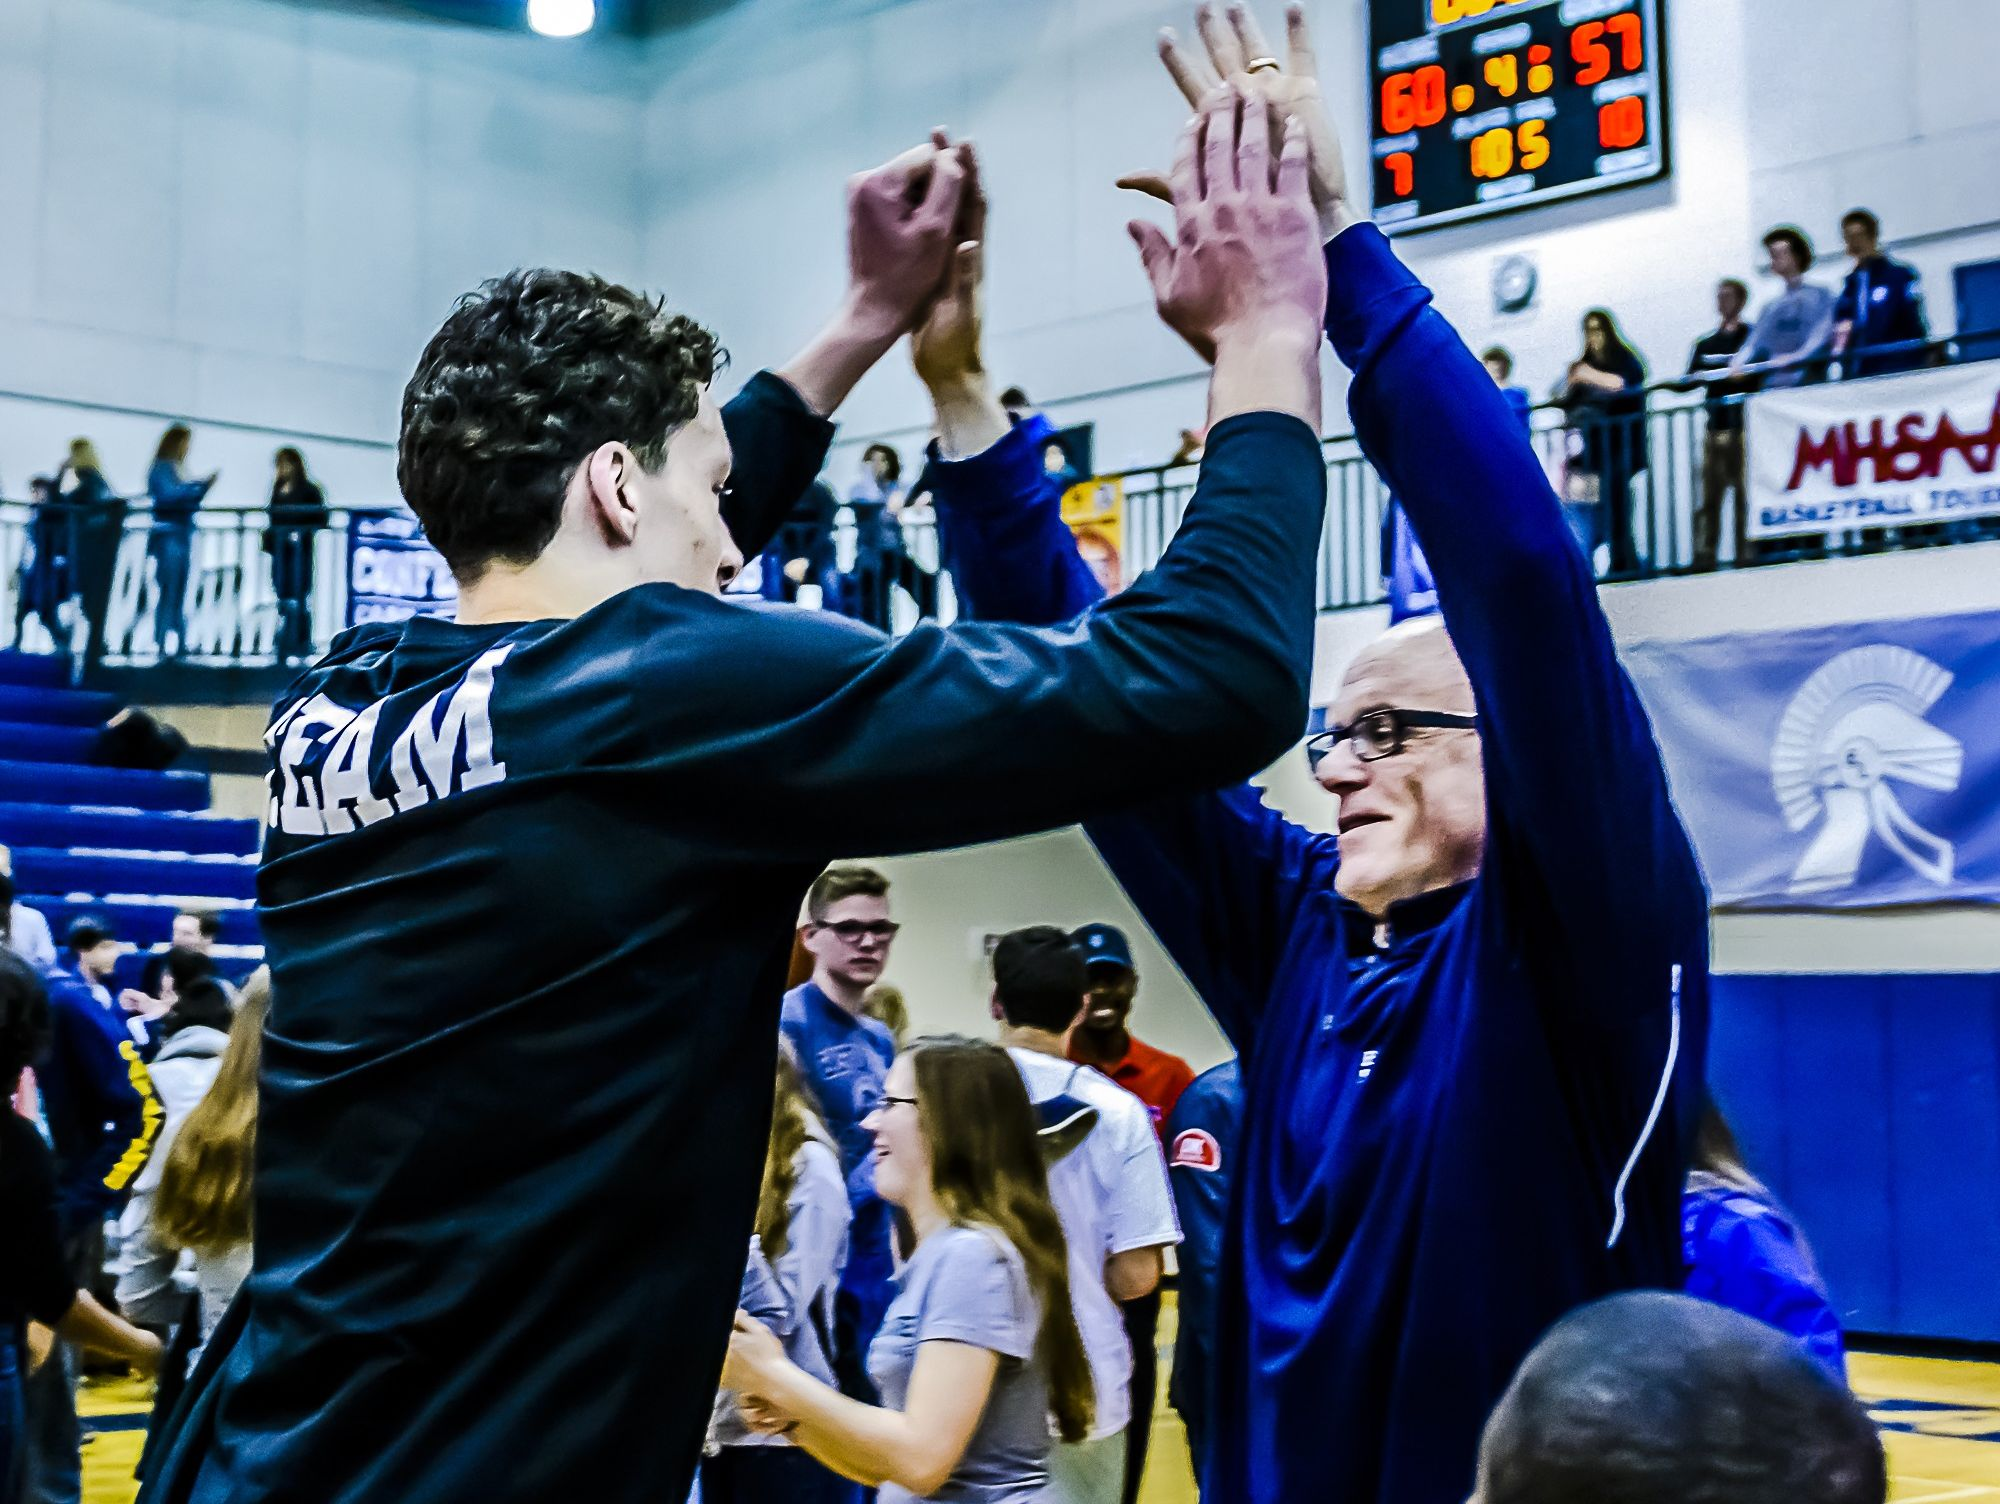 Brandon Johns, left, of East Lansing high-fives East Lansing head coach Steve Finamore last season after winning the Class A district title. Finamore, who led the Trojans to a 23-1 record in 2015, will return eight players - four starters - in the 2016 season.